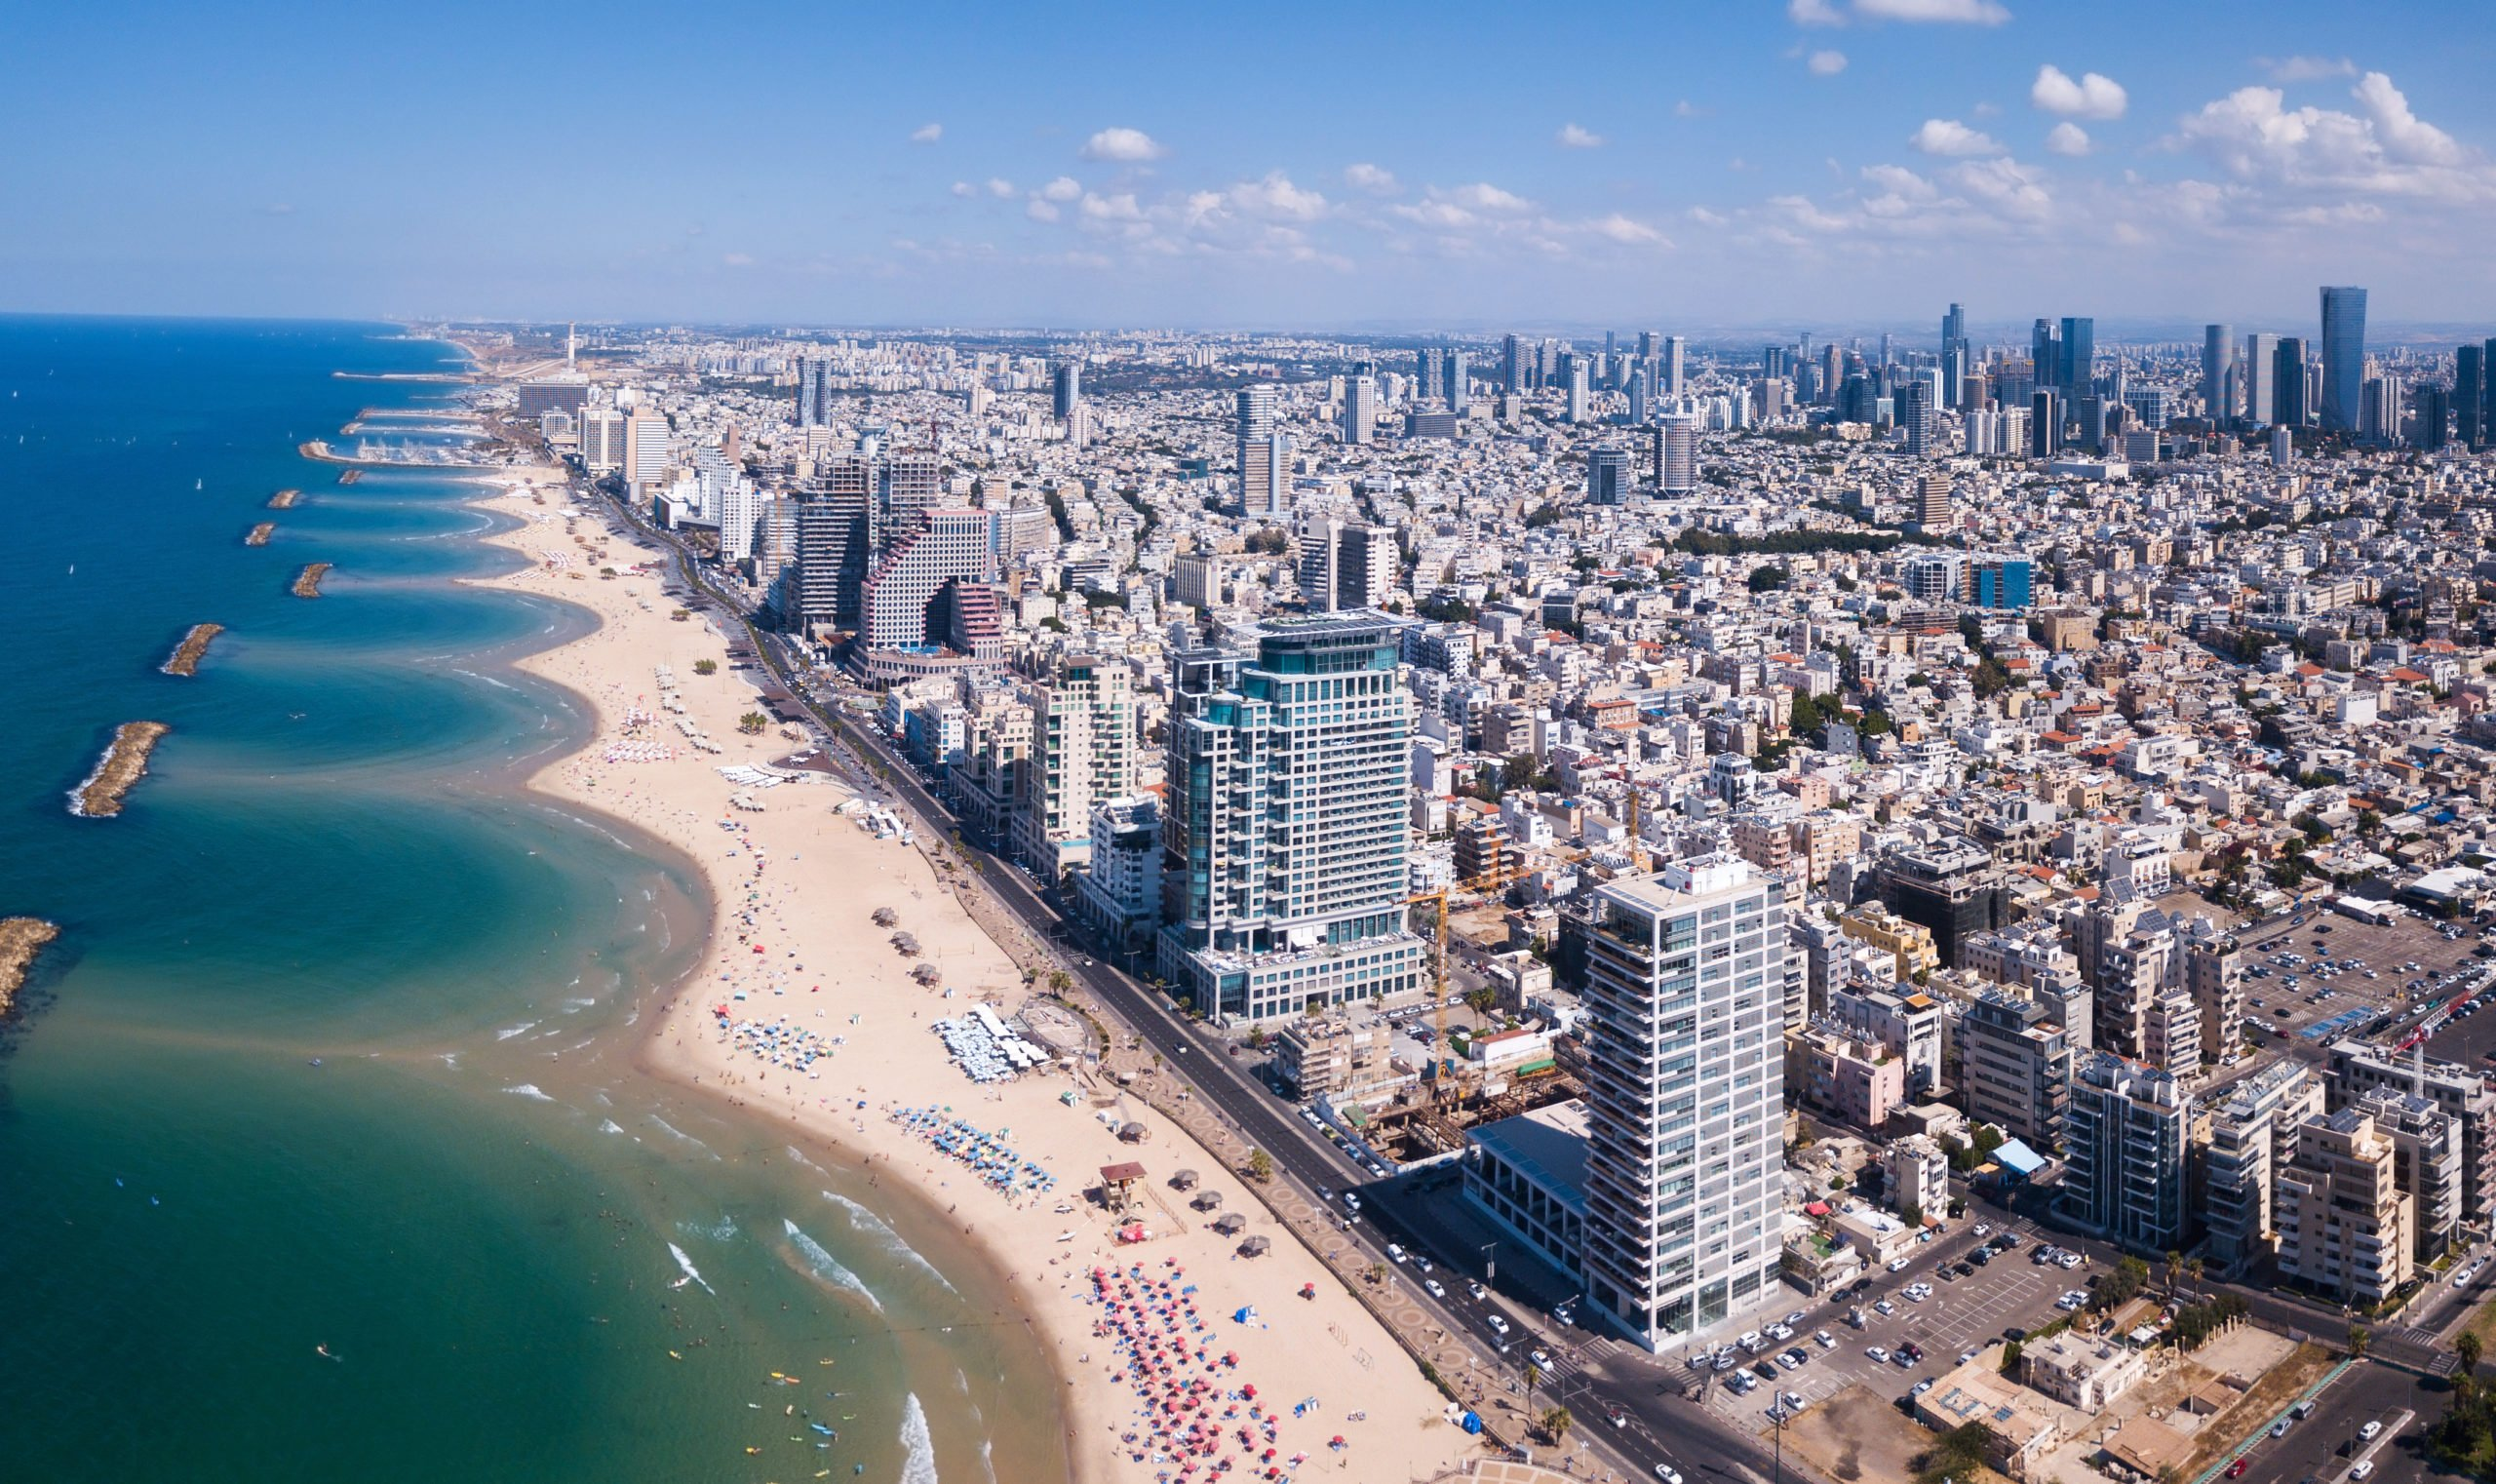 Relax In Tel Aviv On The Enjoy A Day Tour Of Abu Dhabi On The 11 Day Israel Dubai And Abu Dhabi Package Tour Scaled